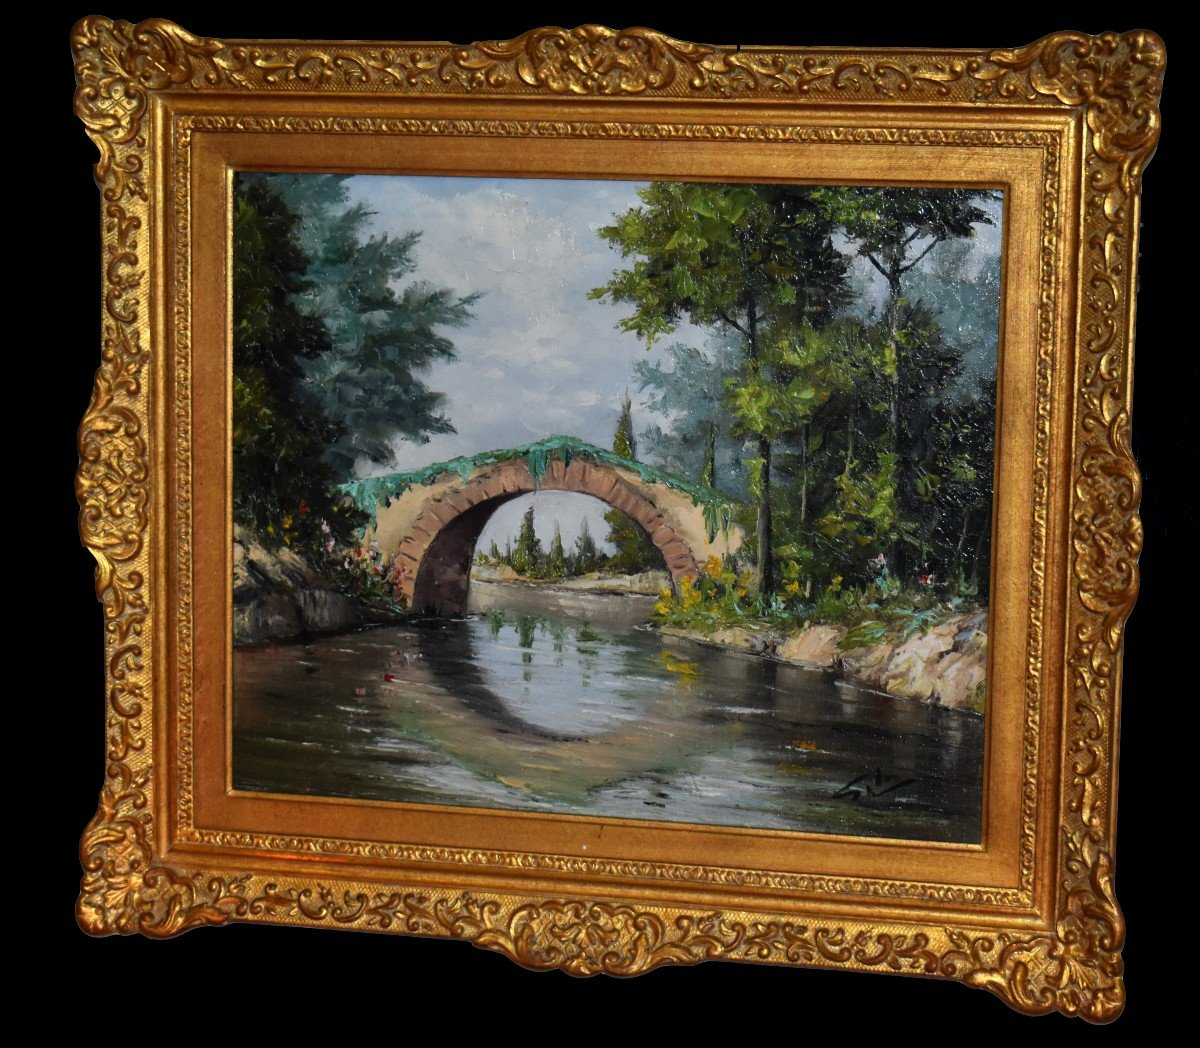 Framed Painting, Oil On Canvas, Bridge And River Landscape.-photo-8